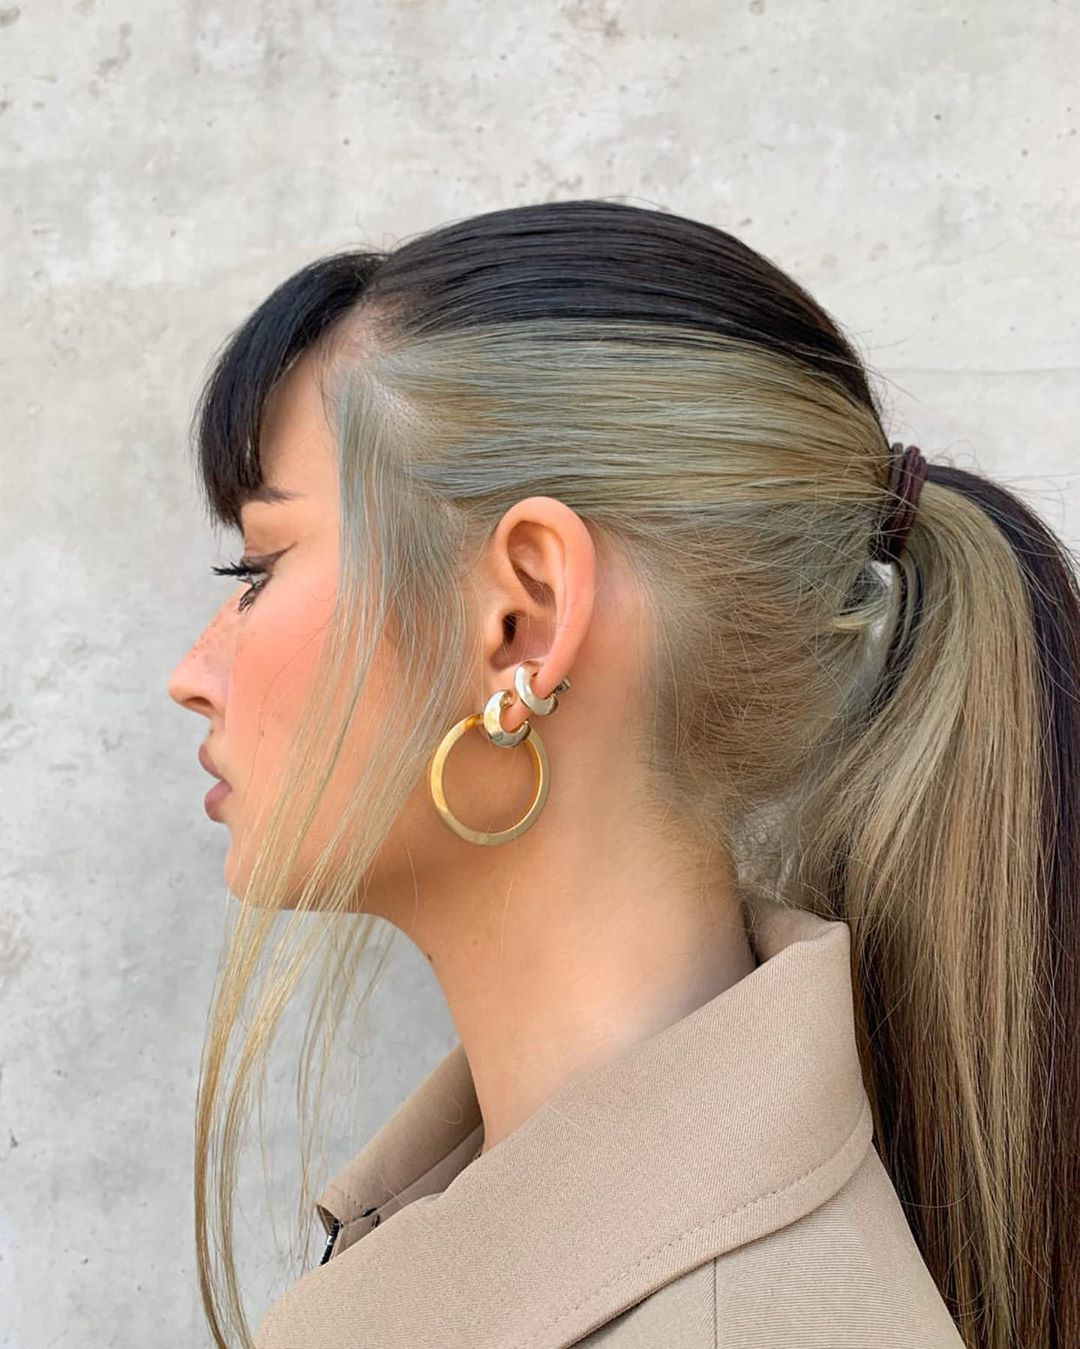 Pin By Jase On Emma Chamberlain In 2020 Hair Inspo Color Hair Color Streaks Hair Dyed Underneath